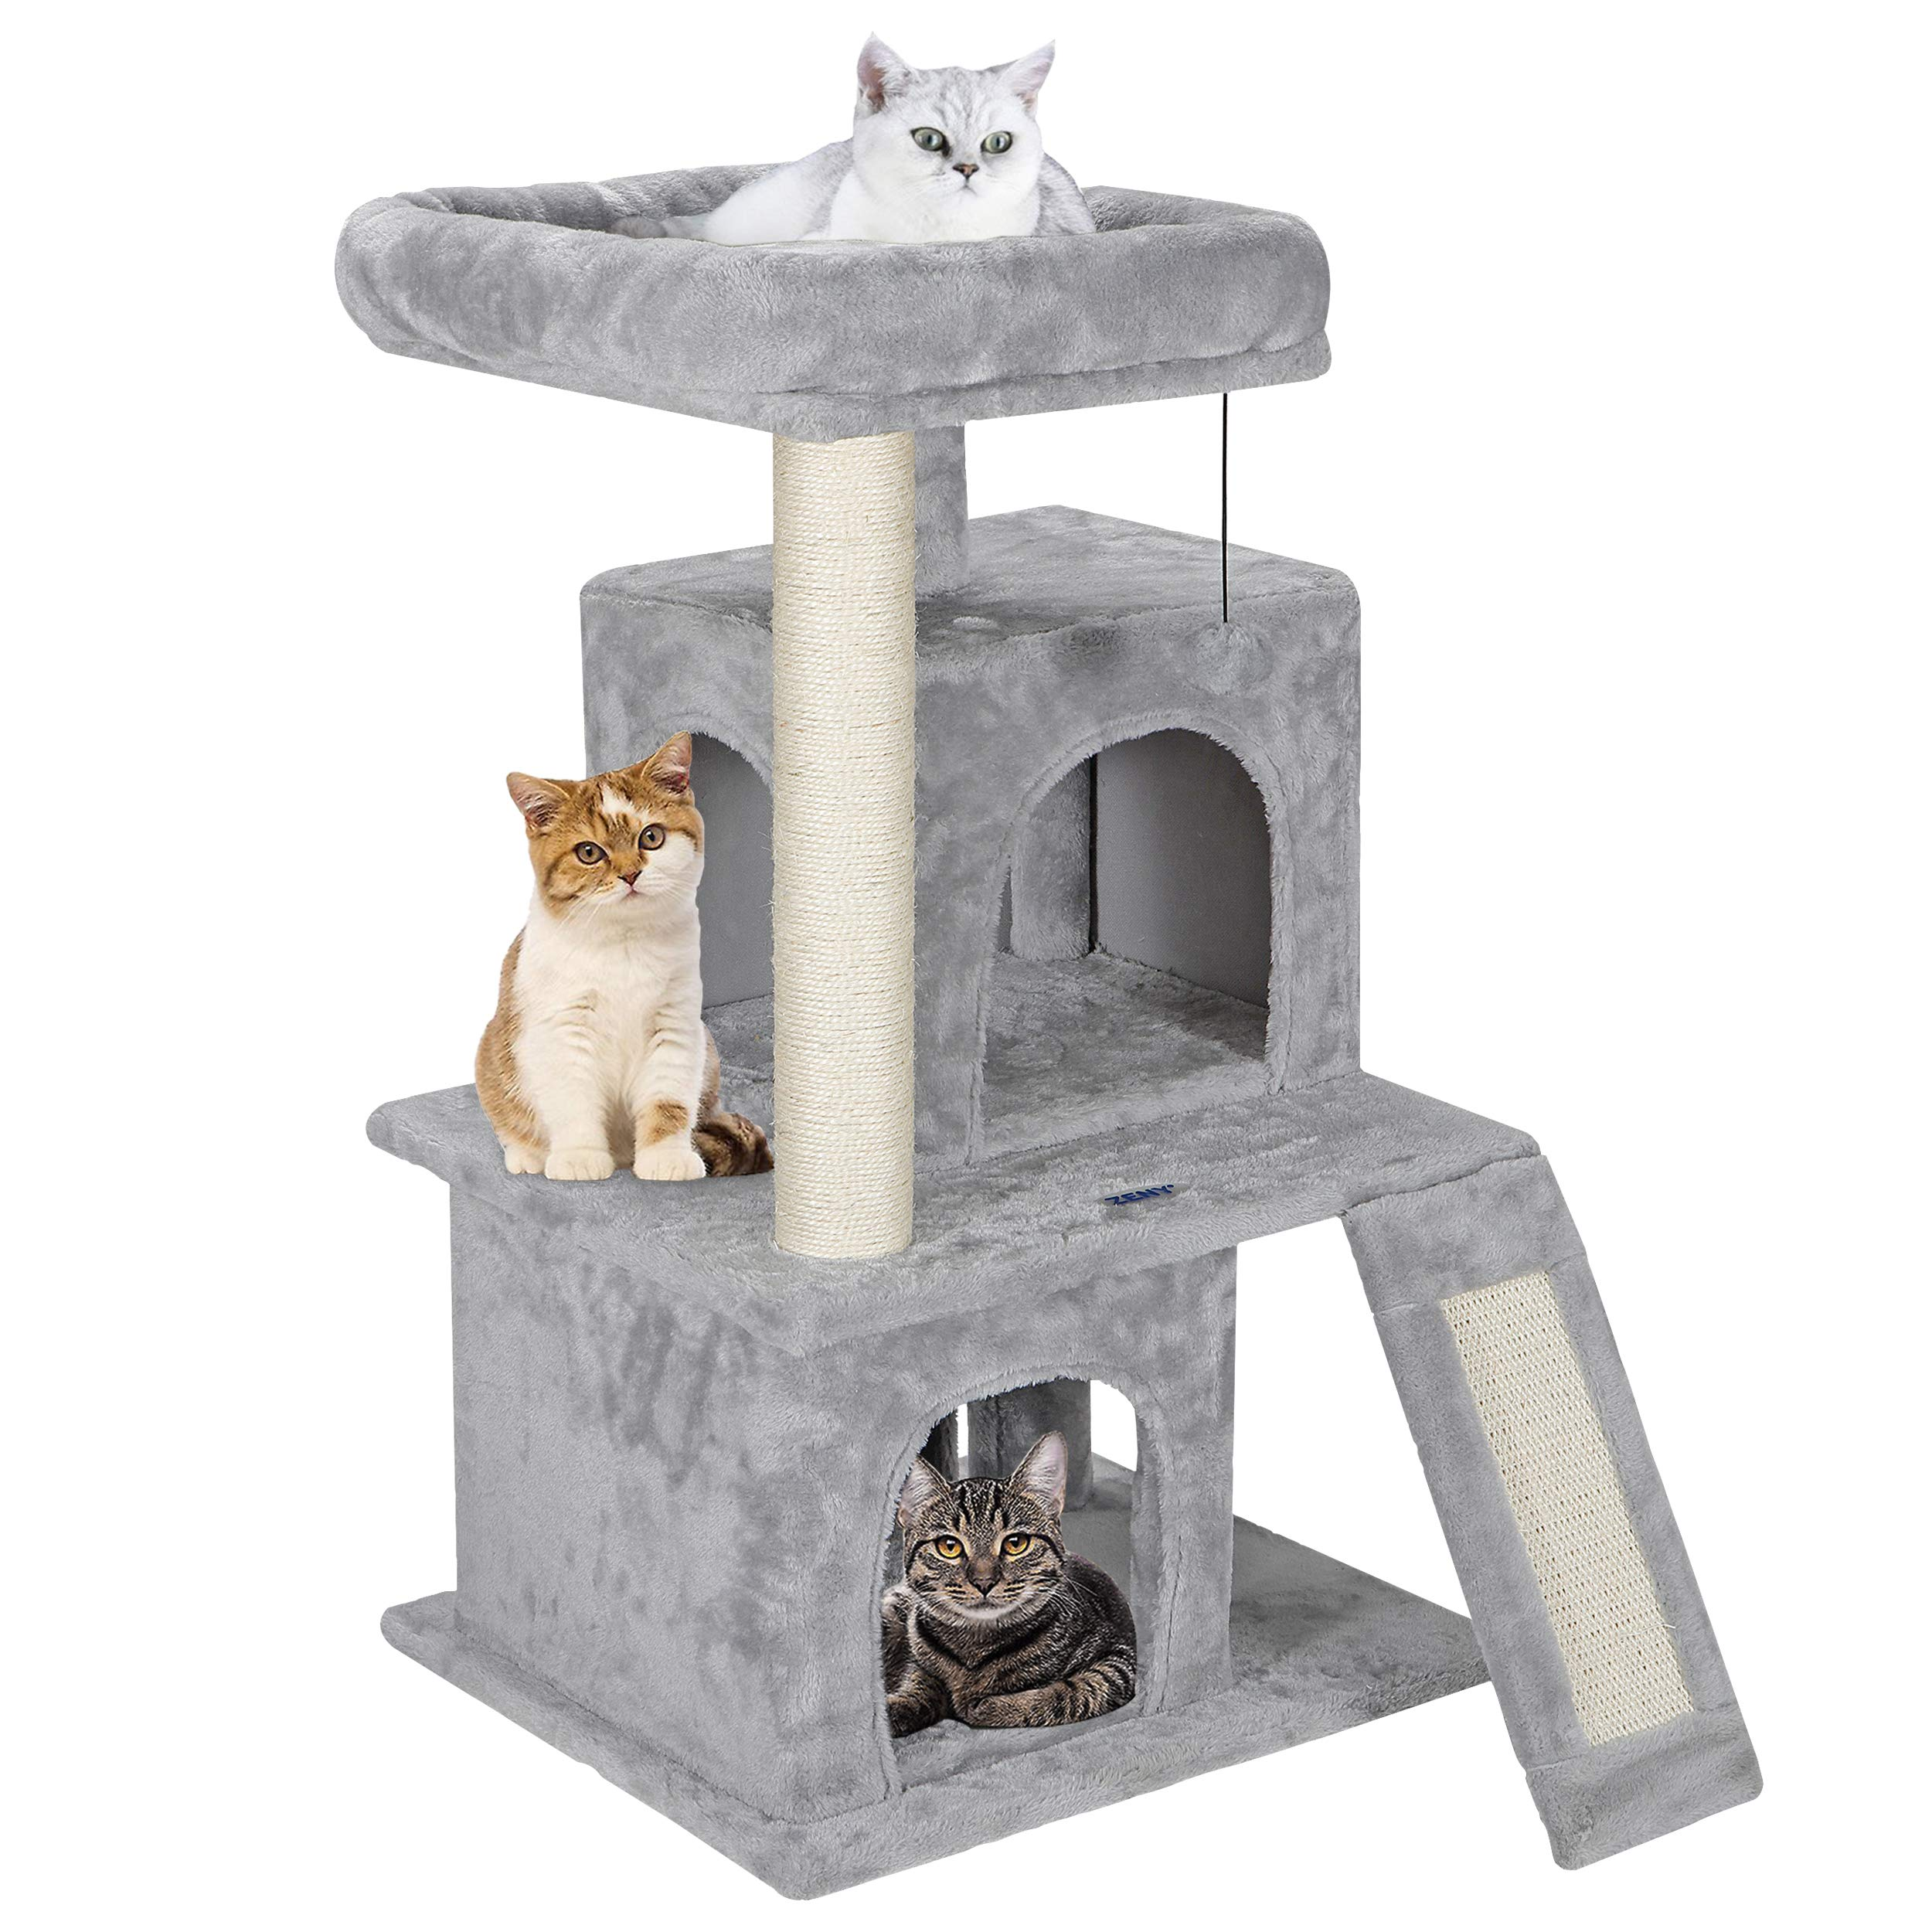 ZENY 33.5'' Cat Tree Tower with Scratching Posts - Kittens House Furniture Trees by ZENY